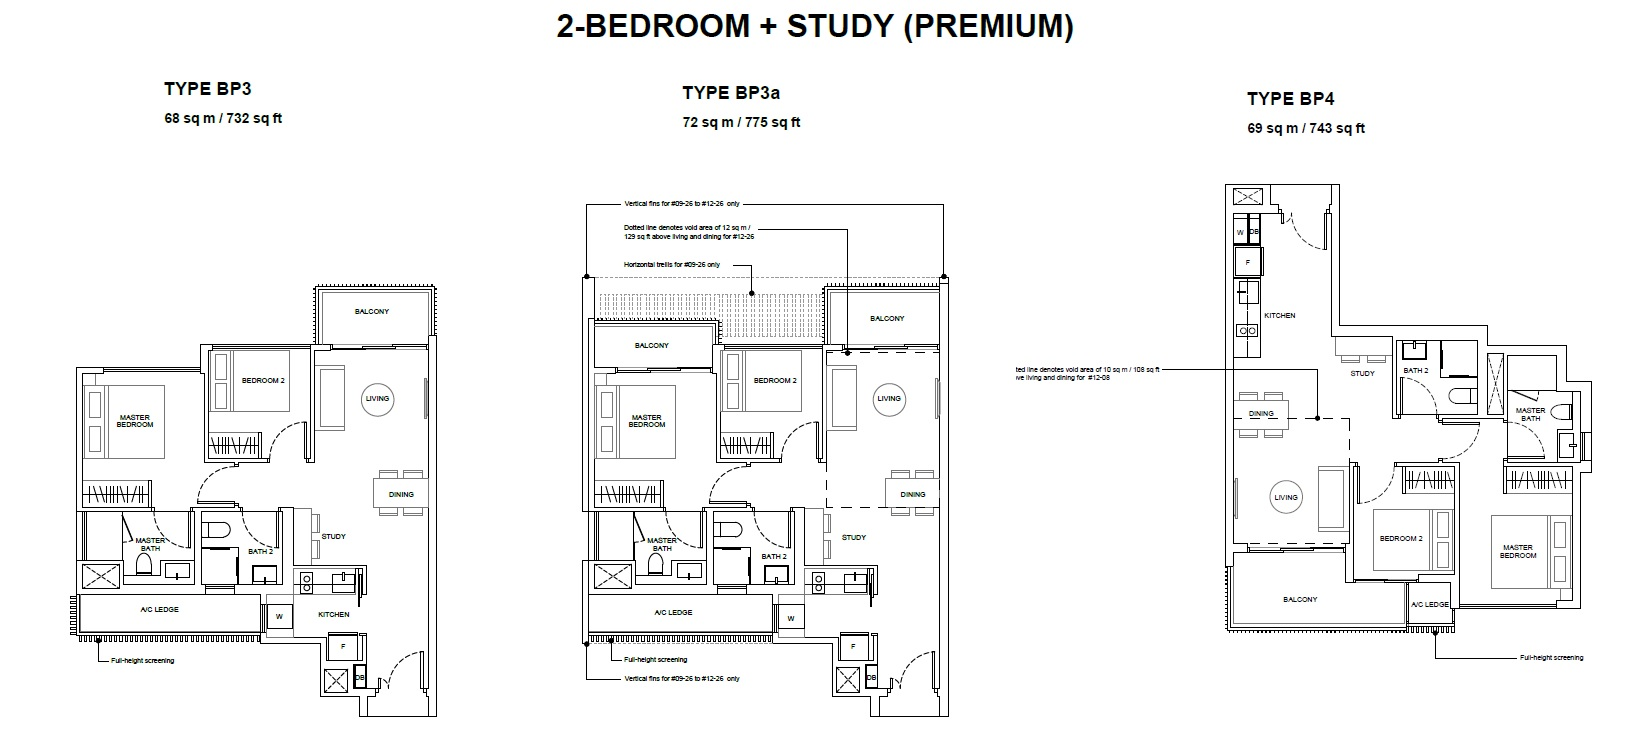 forest-woods-floor-plan-for-two-bedroom-plus-study-premium